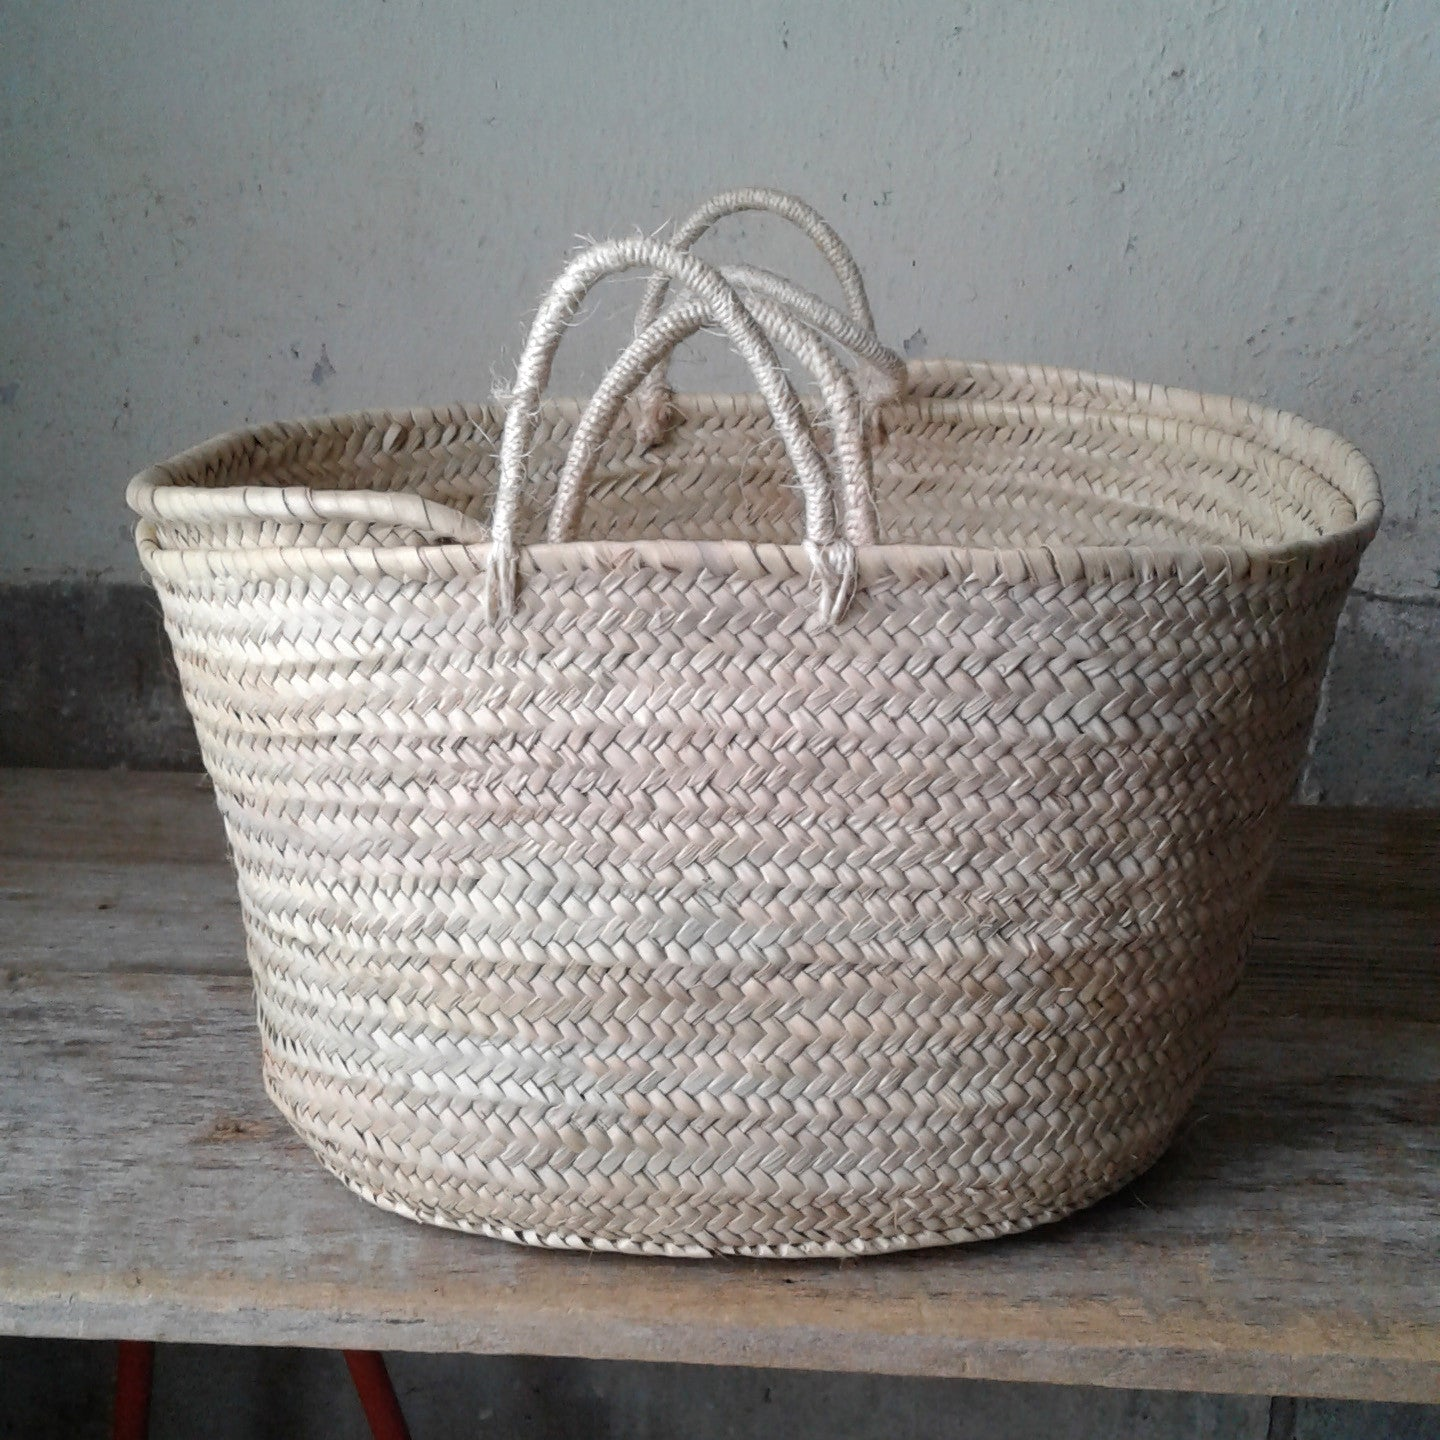 Medina Mercantile : French Market Baskets and More